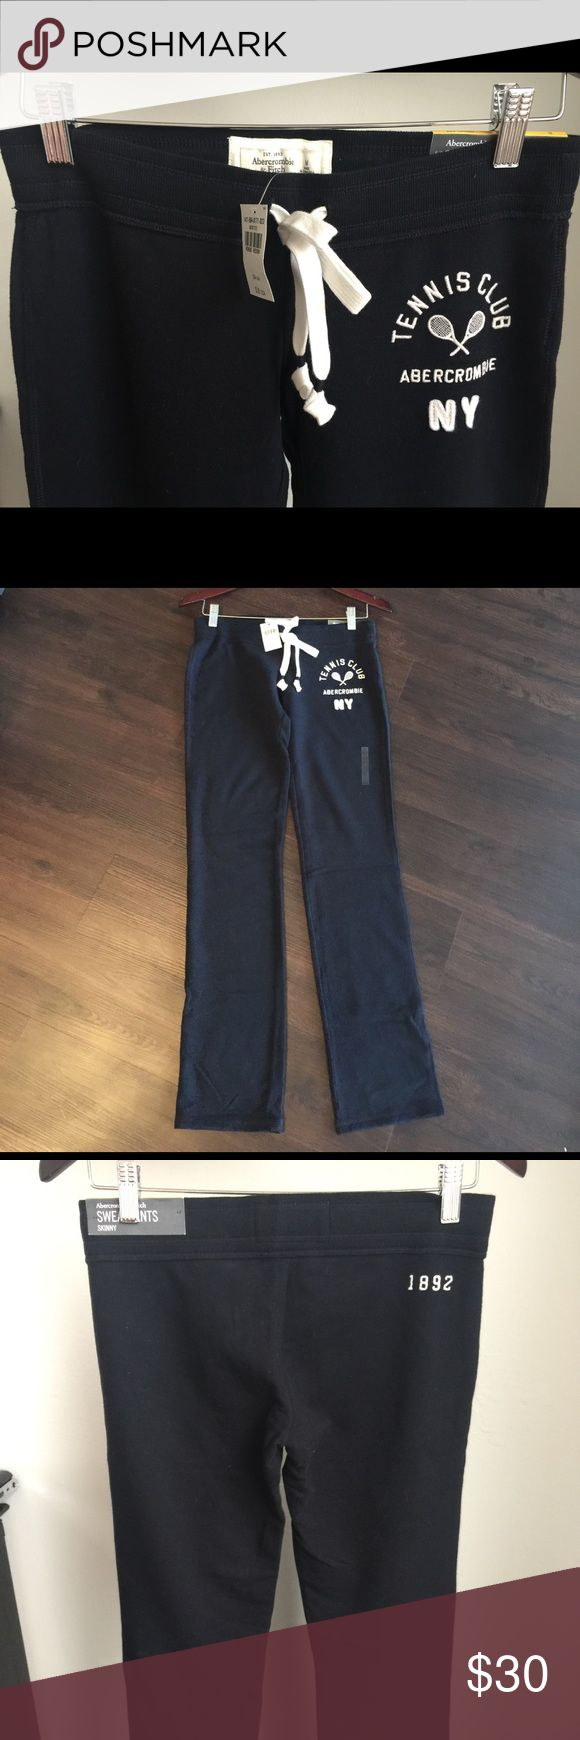 Women's Navy Abercrombie and Fitch Sweatpants Never worn. With tags. Navy, skinny fit. I can live in their sweats, they are so soft and cozy!! Abercrombie & Fitch Pants Track Pants & Joggers